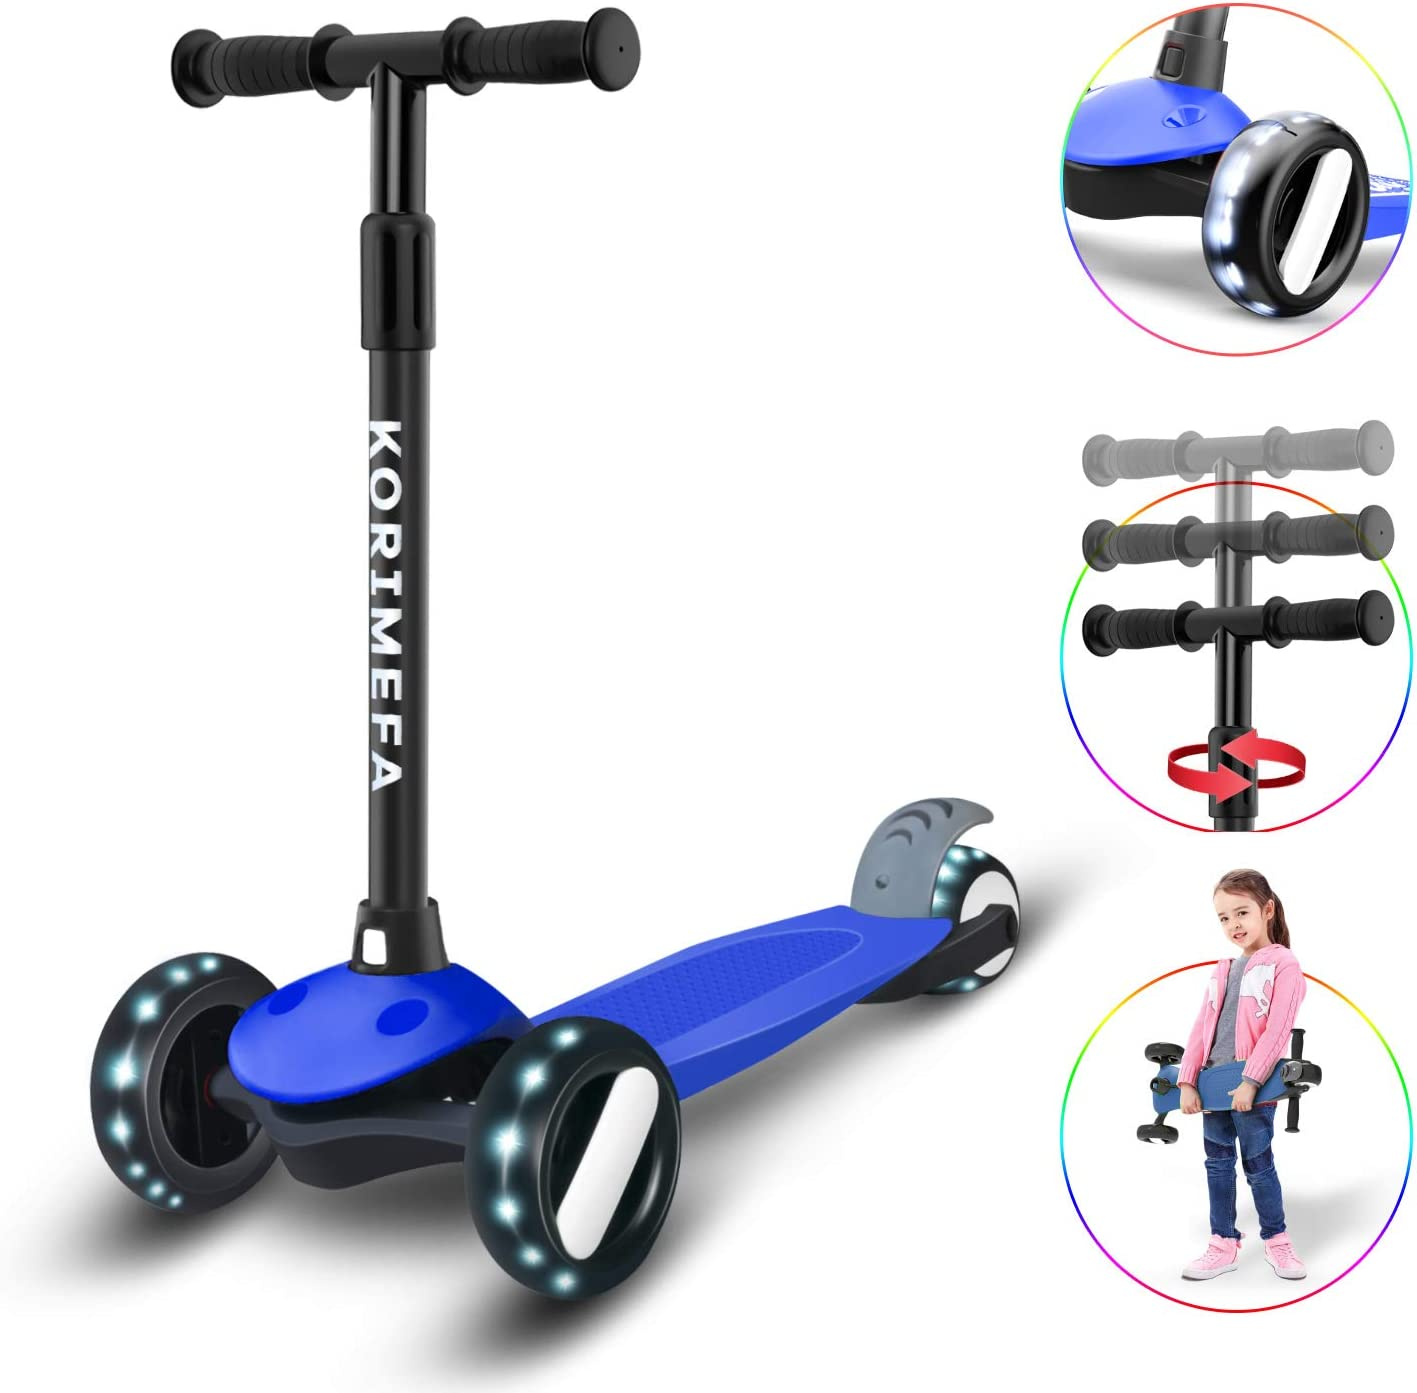 KORIMEFA Kick Scooter for Kids 3 Wheel Scooter for Toddlers Girls Boys Lightweight 4 Adjustable Height Lean to Steer with PU Flashing Wheels Scooter for Children from 2 to 6 Years Old